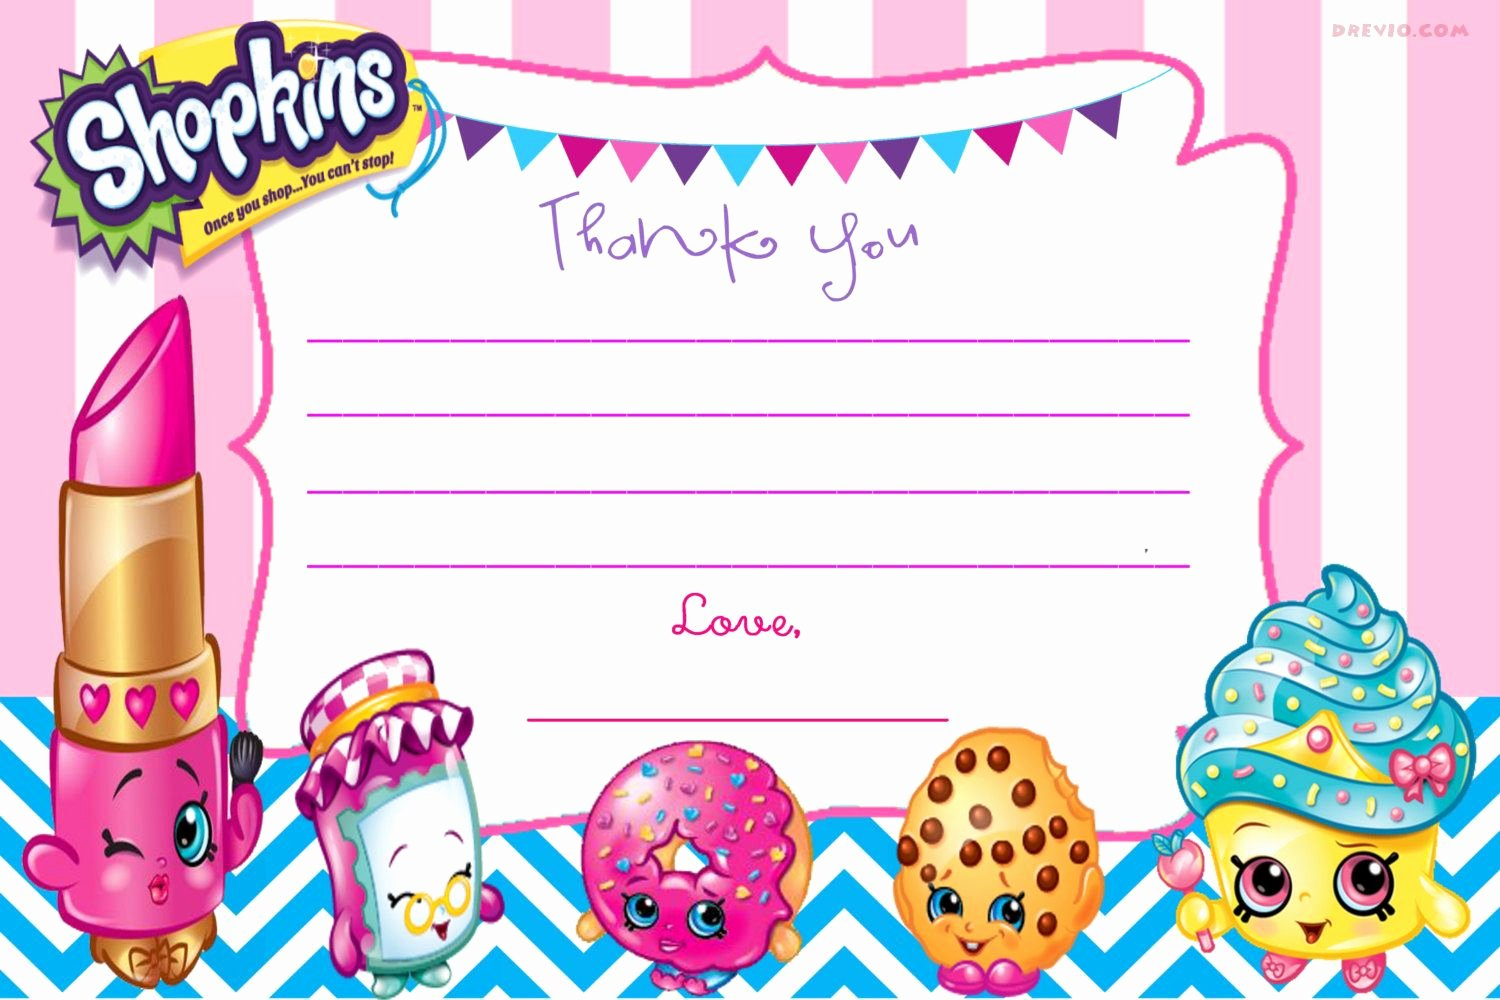 Shopkins Invitations Template Free Beautiful Free Printable Shopkins Thank You Card Template – Drevio